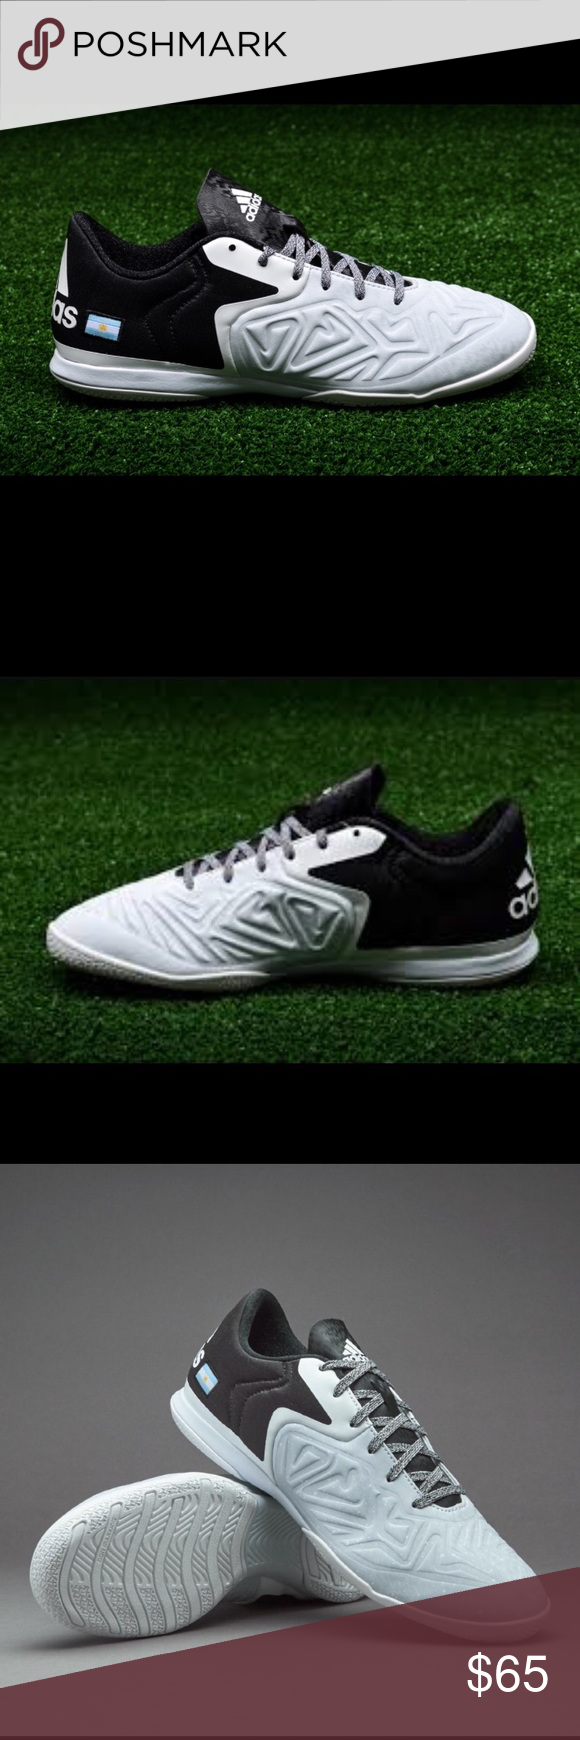 Adidas X15.2 Sala CT Indoor Soccer Shoes Size 11 *PLEASE READ ENTIRE DESCRIPTION AND VIEW ALL PICTURES BEFORE PLACING YOUR BID. THANK YOU.   *100% AUTHENTIC AND SATISFACTION GUARANTEED! NO FAKES! NO VARIANTS!   *PET AND SMOKE-FREE HOUSE!  *SERIOUS BUYERS ONLY PLEASE!   *MESSAGE ME ANY QUESTIONS YOU MAY HAVE.   *SAVE ME AS A FAVORITE SELLER!!! CHECK MY OTHER LISTINGS! Adidas Shoes Athletic Shoes